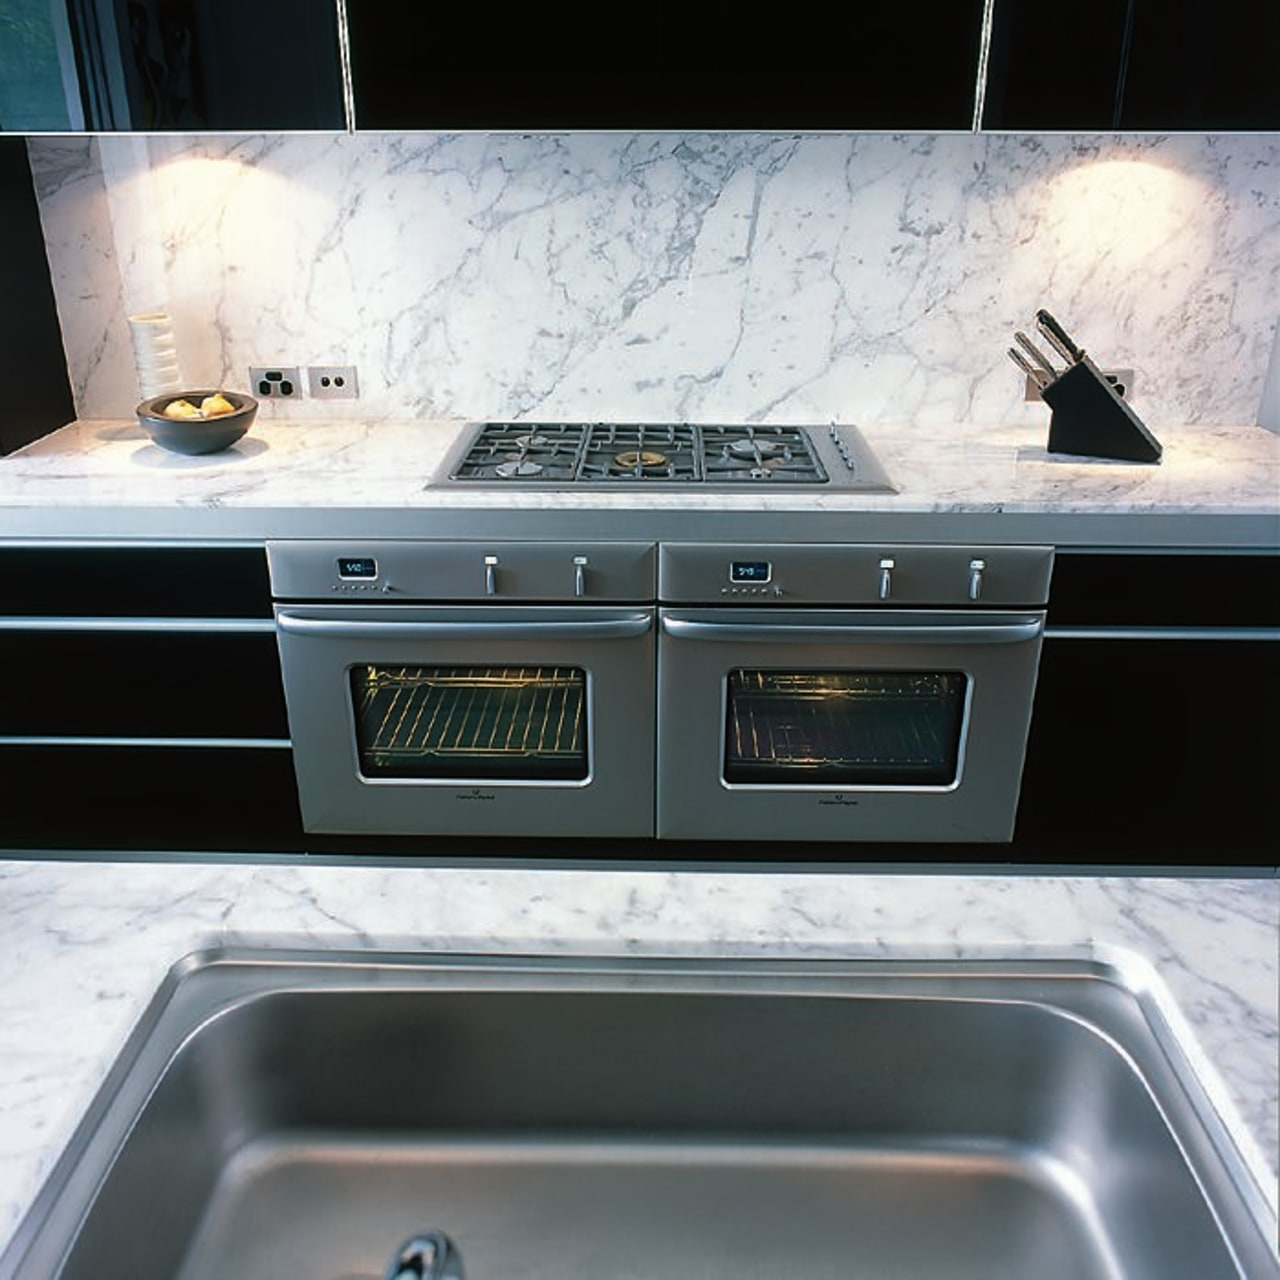 View of the appliance countertop, floor, home appliance, kitchen stove, black, white, gray